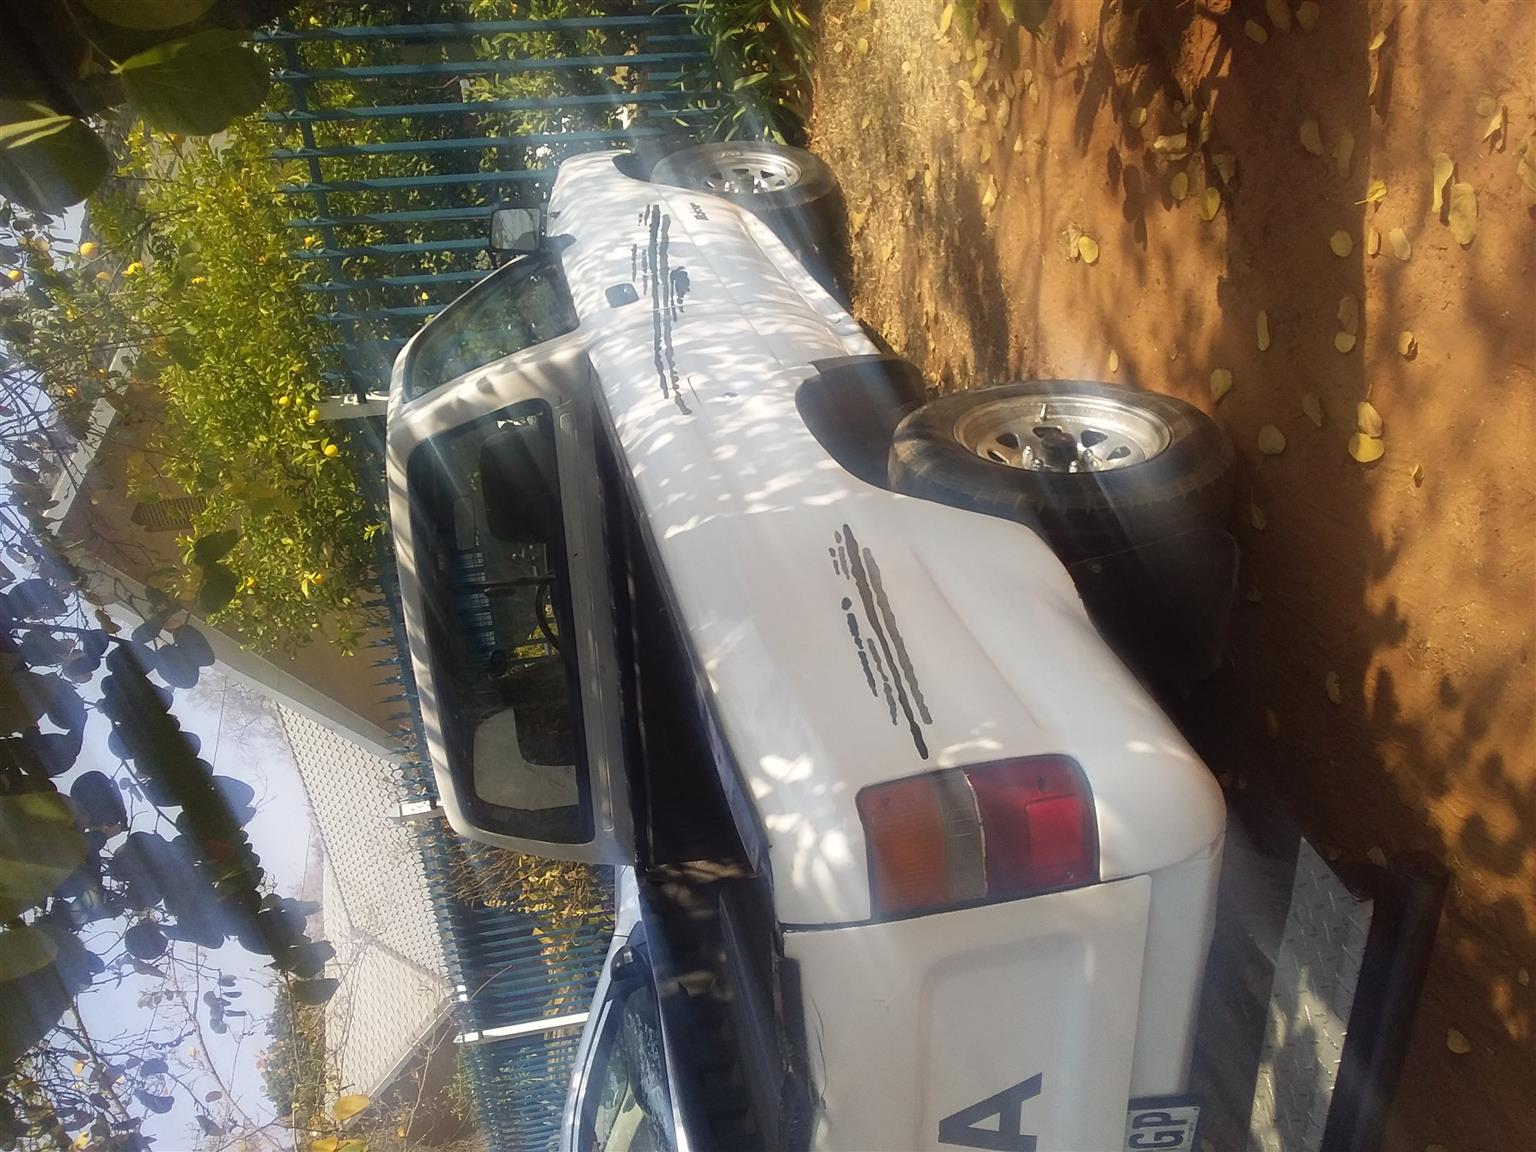 1999 Toyota Hilux 2.0 chassis cab